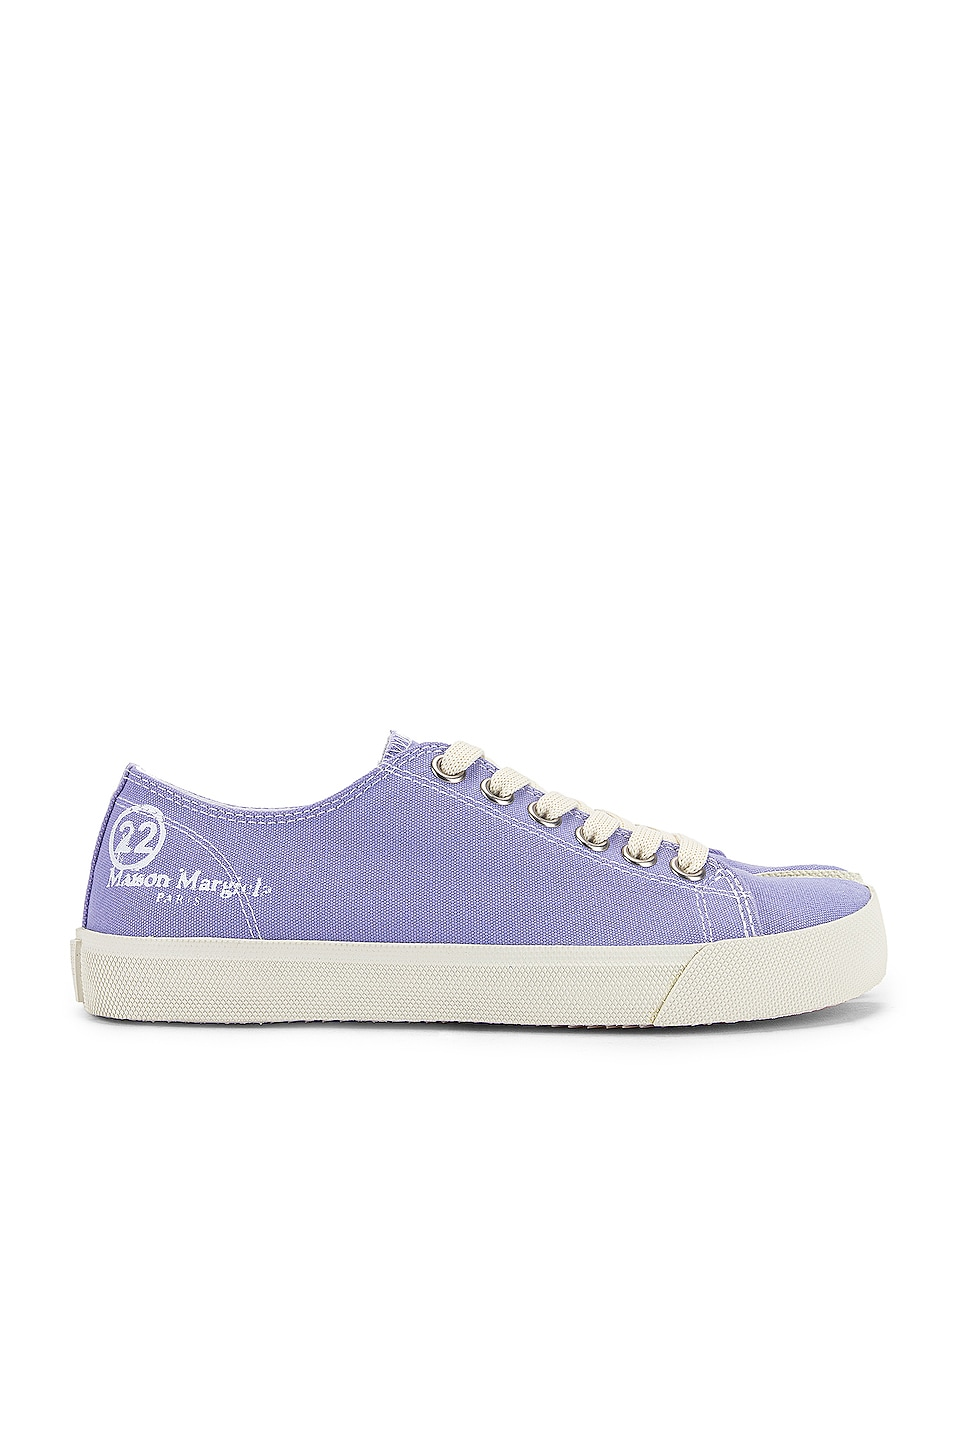 Image 2 of Maison Margiela Tabi Low Top Canvas Sneakers in Thistle